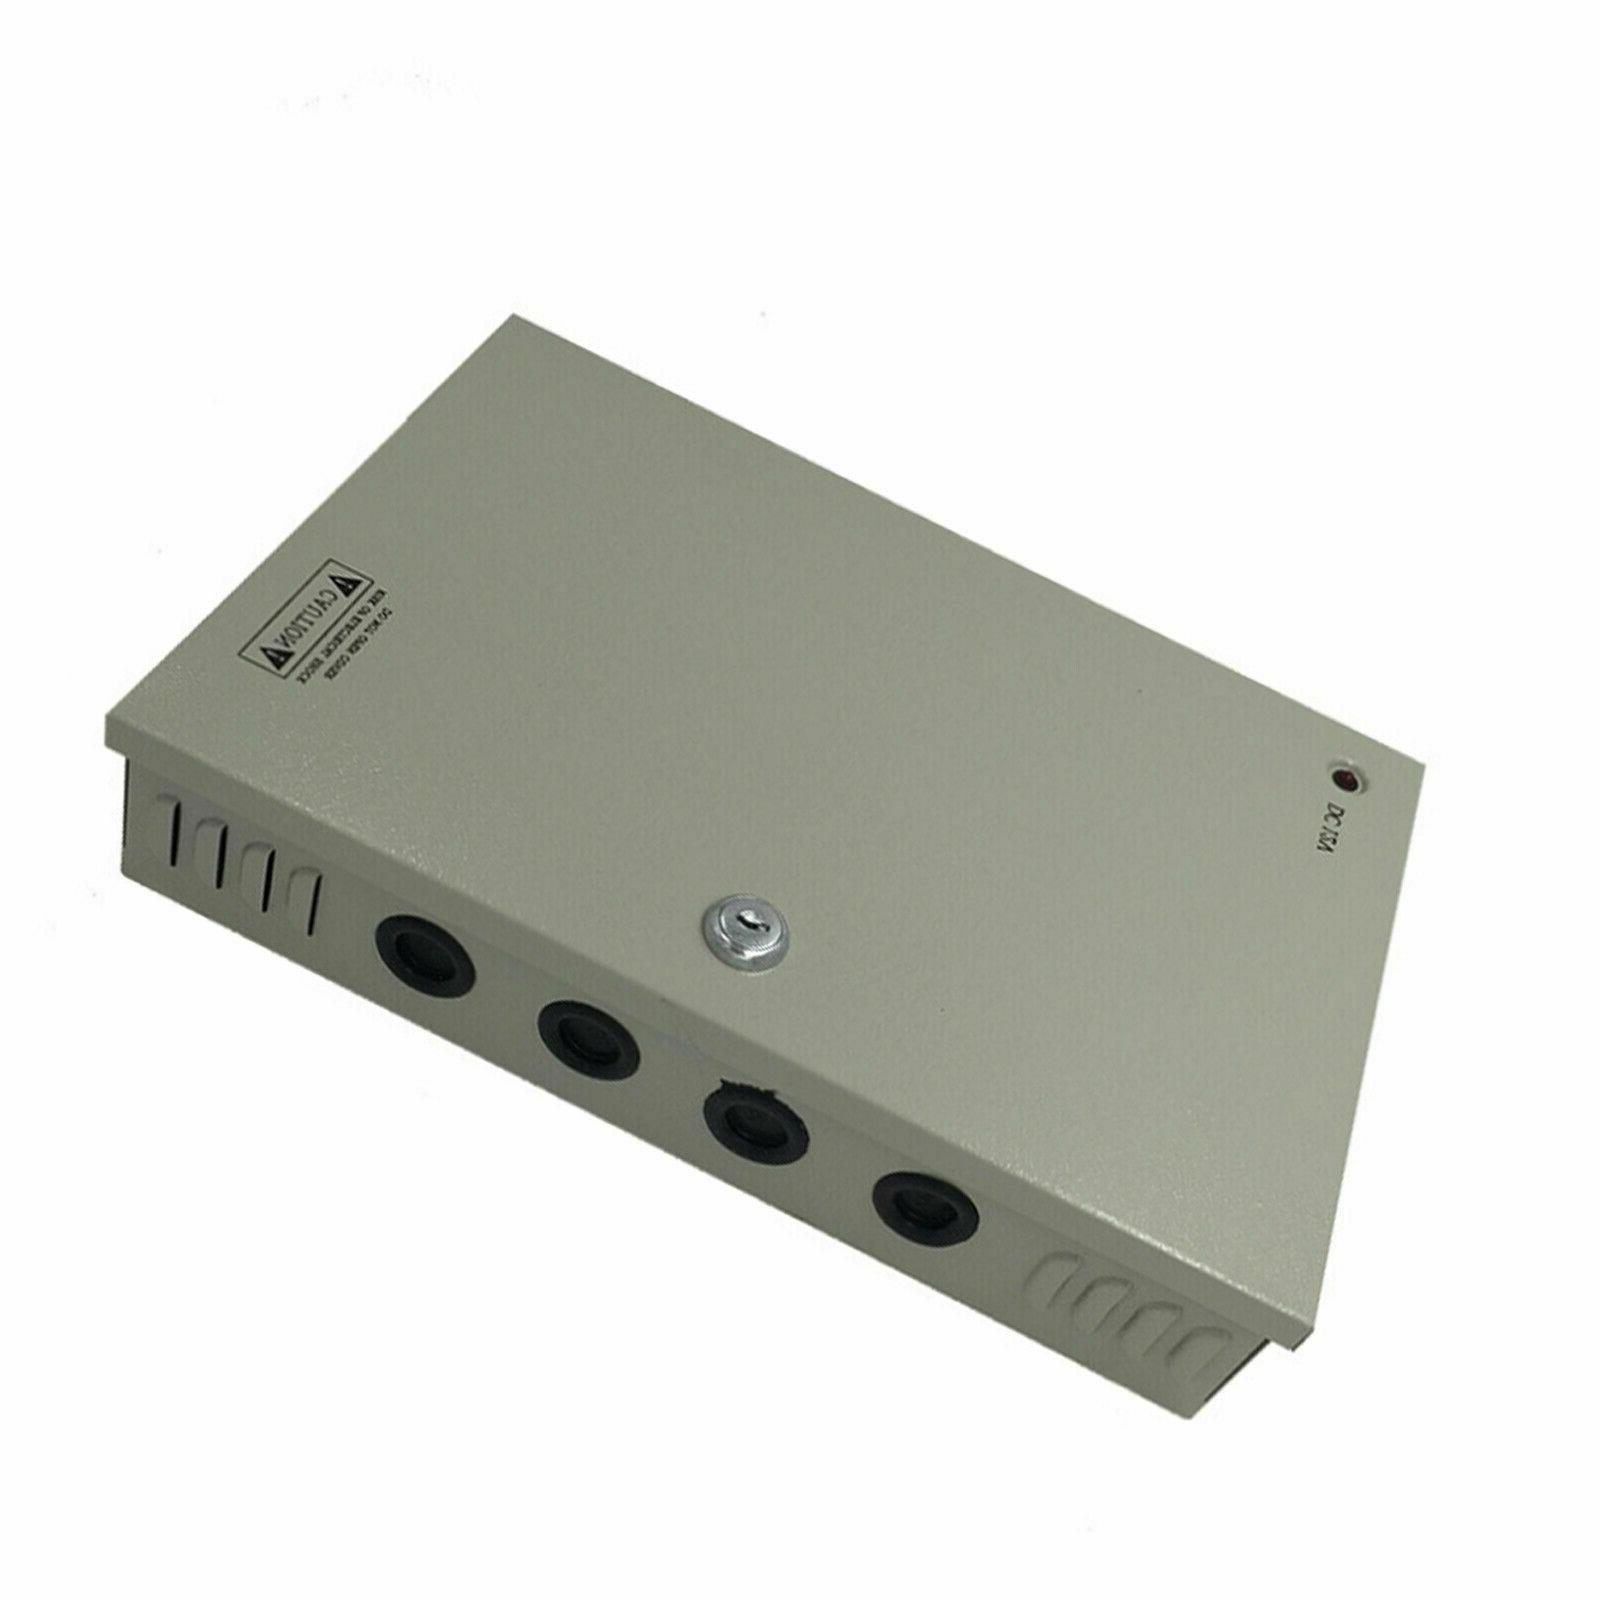 9 Camera Power DC 12V 10A DVR